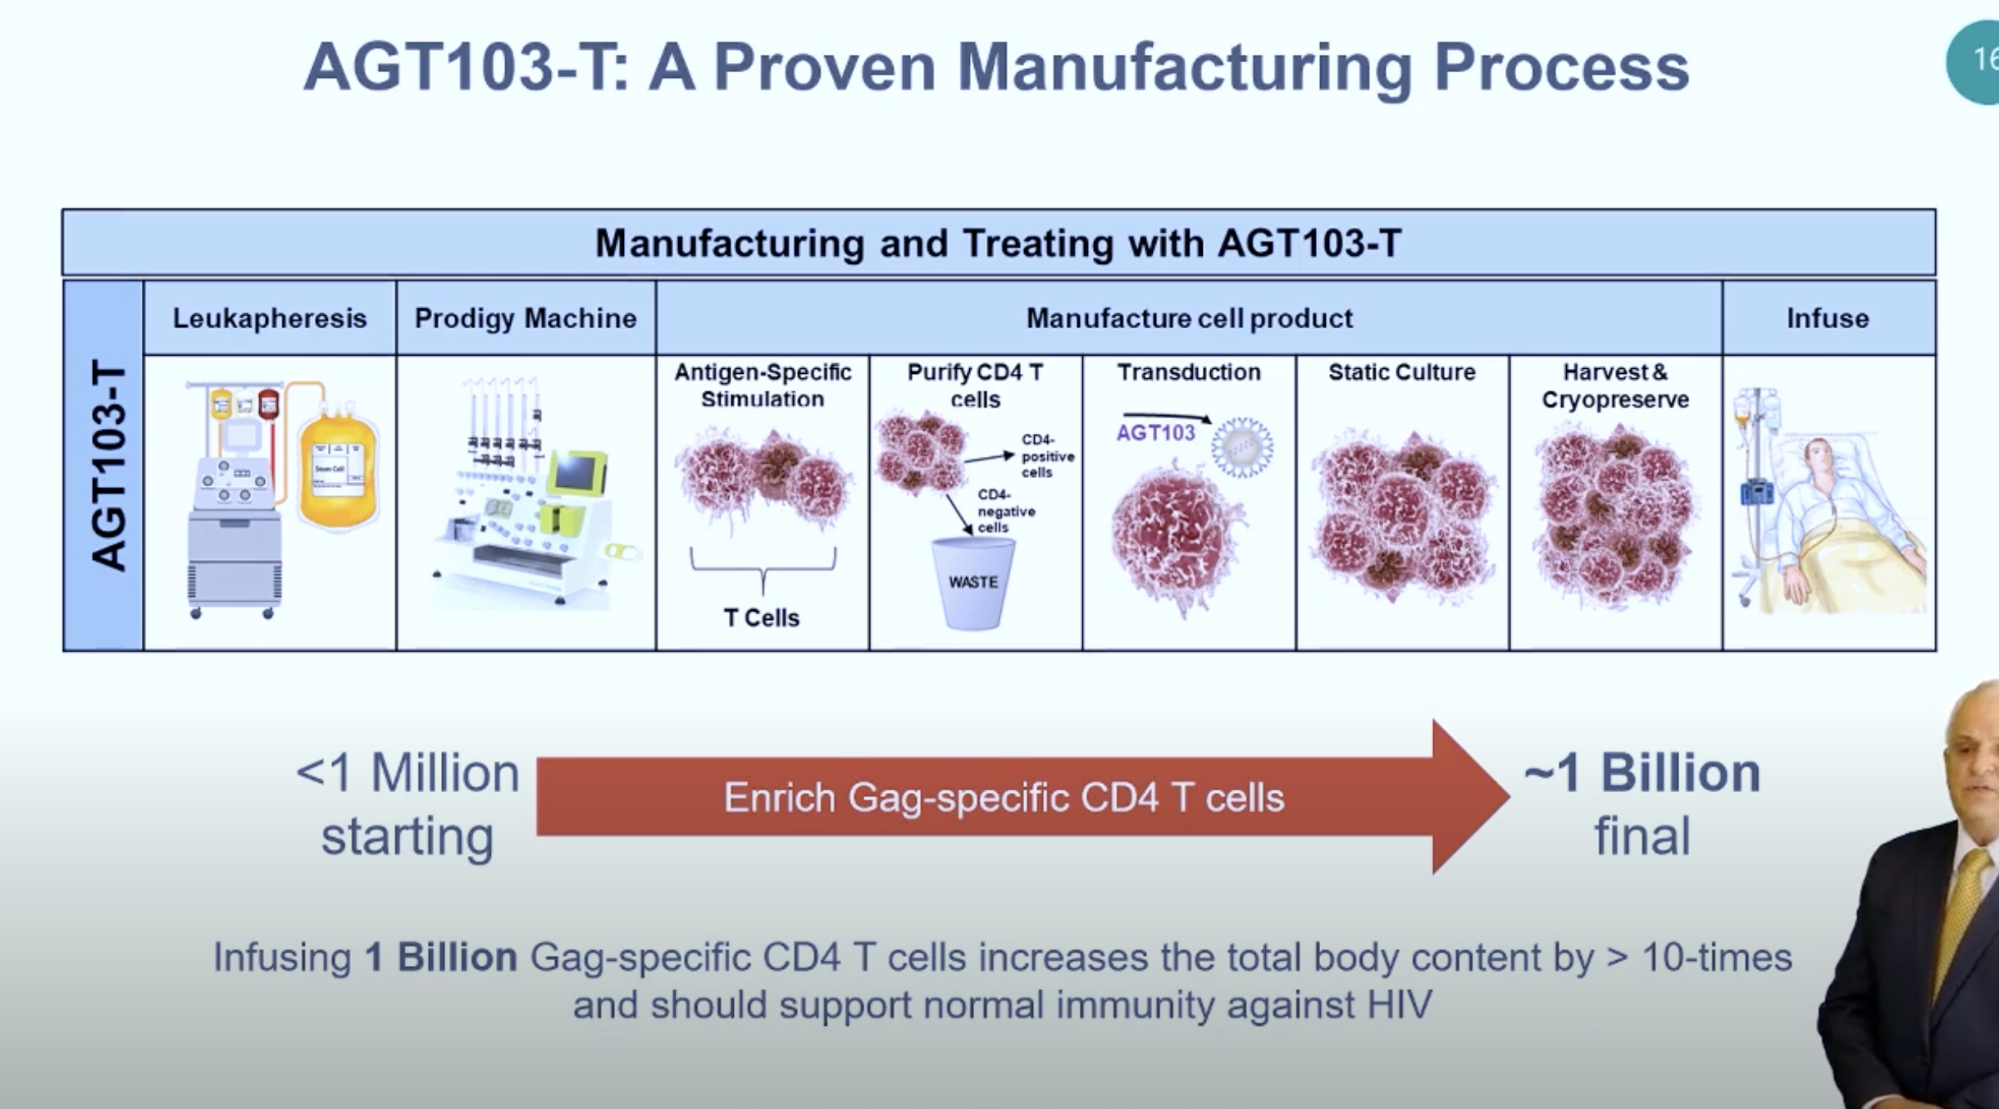 agt103-t-a-proven-manufacturing-process